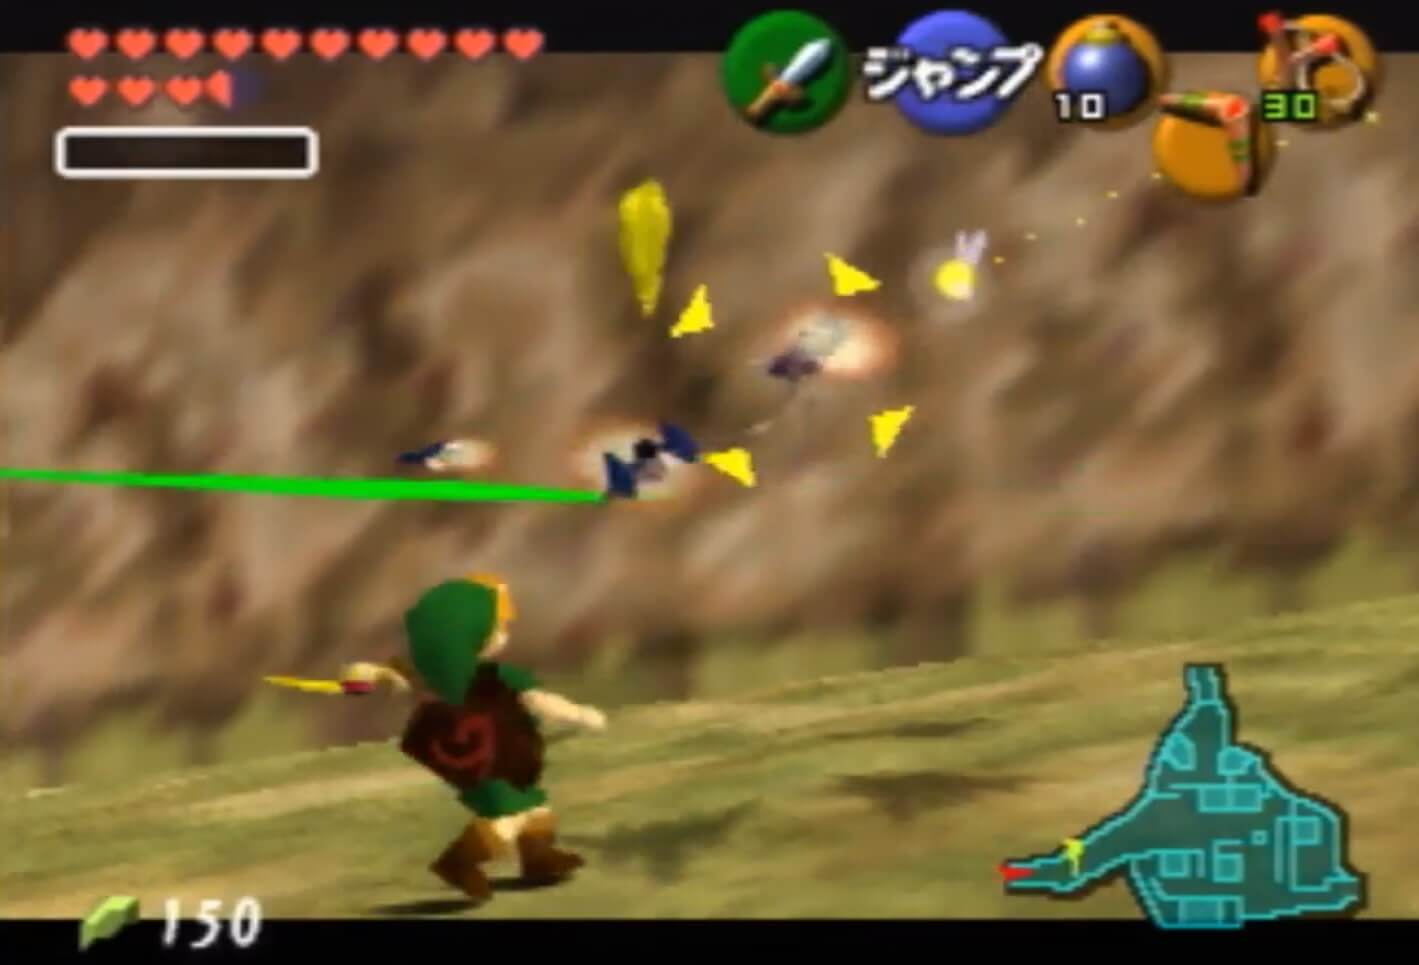 Star Fox 64 ships can be spawned into Zelda: Ocarina of Time without mods